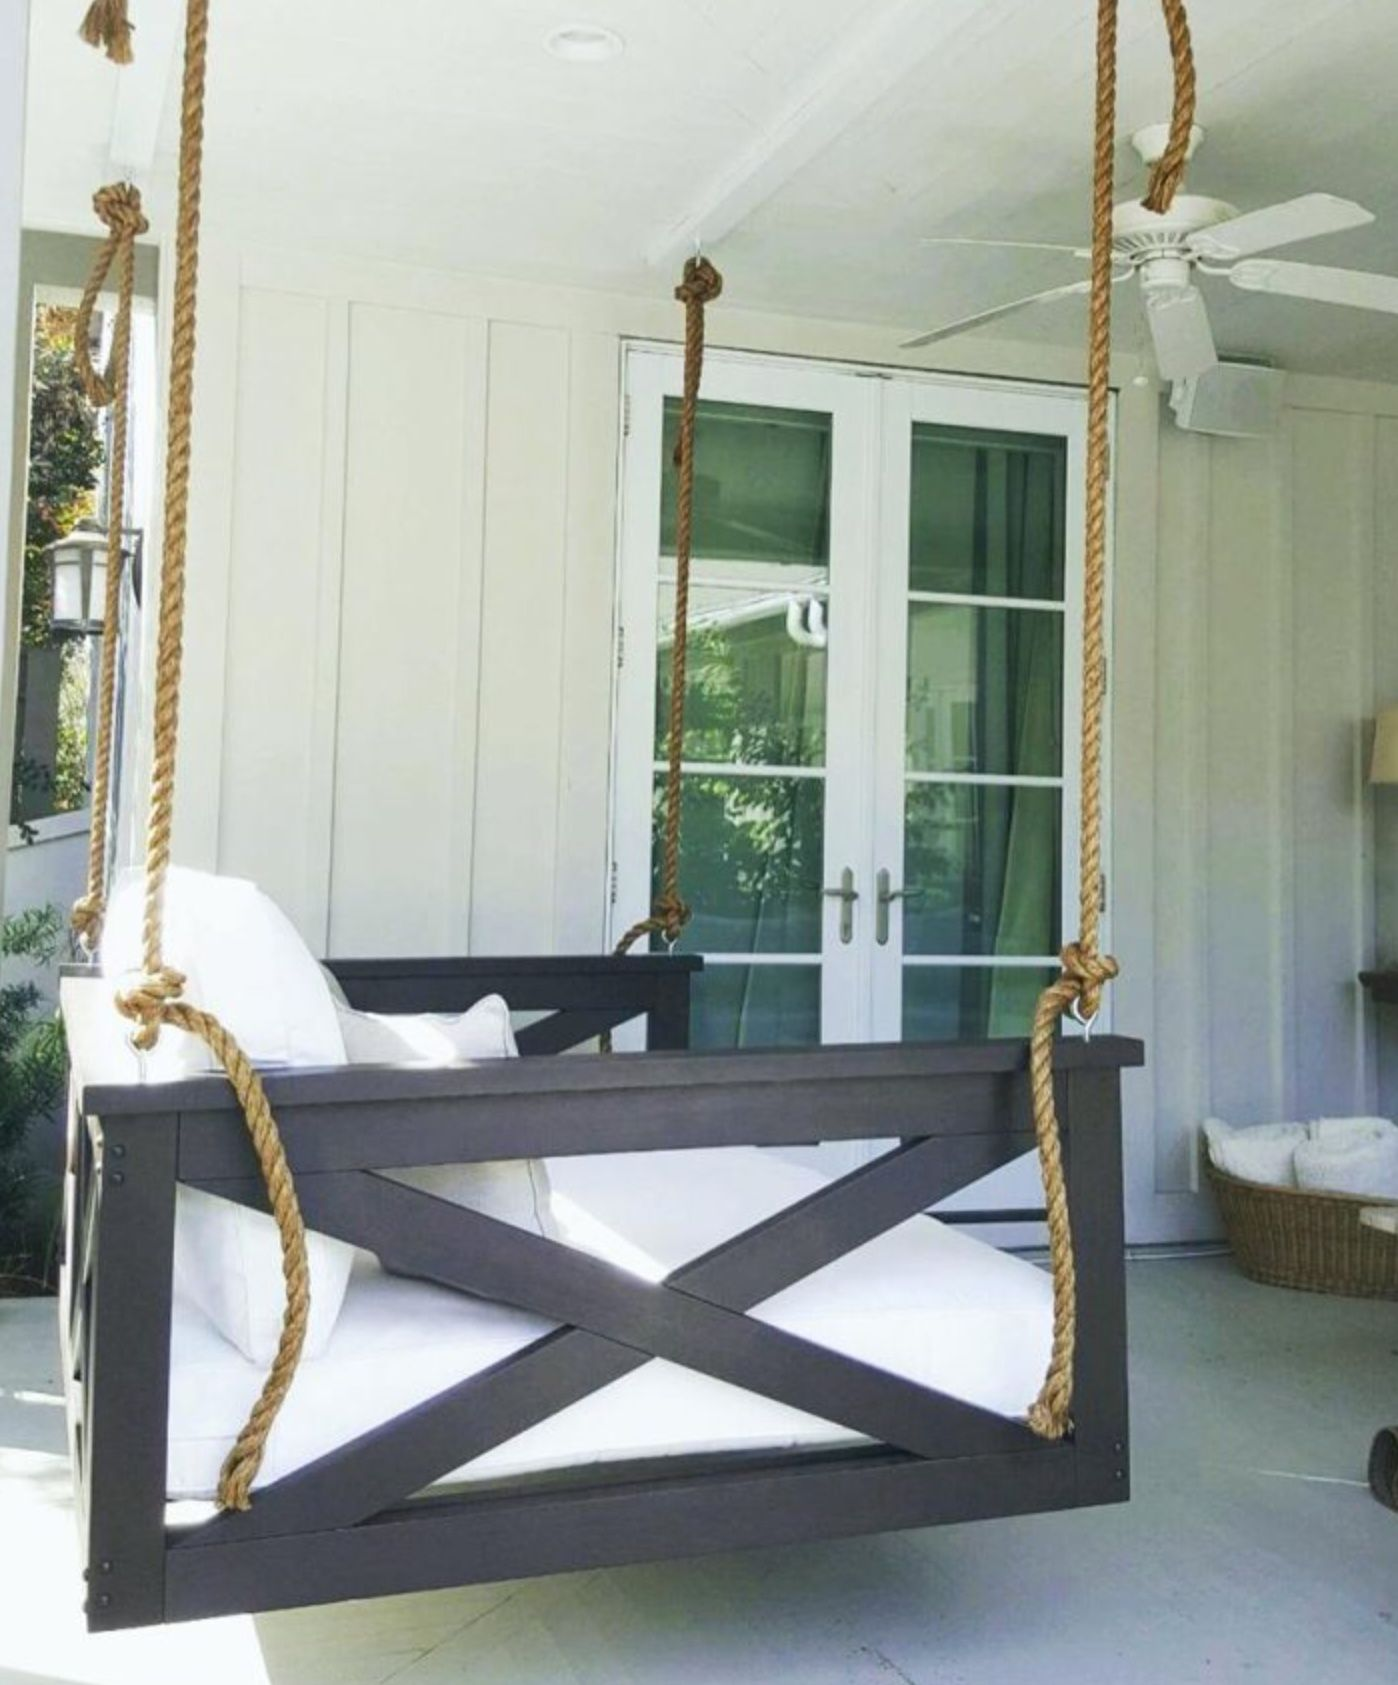 Oversized Porch Swing Is A Must Have Diy Porch Swing Bed Diy